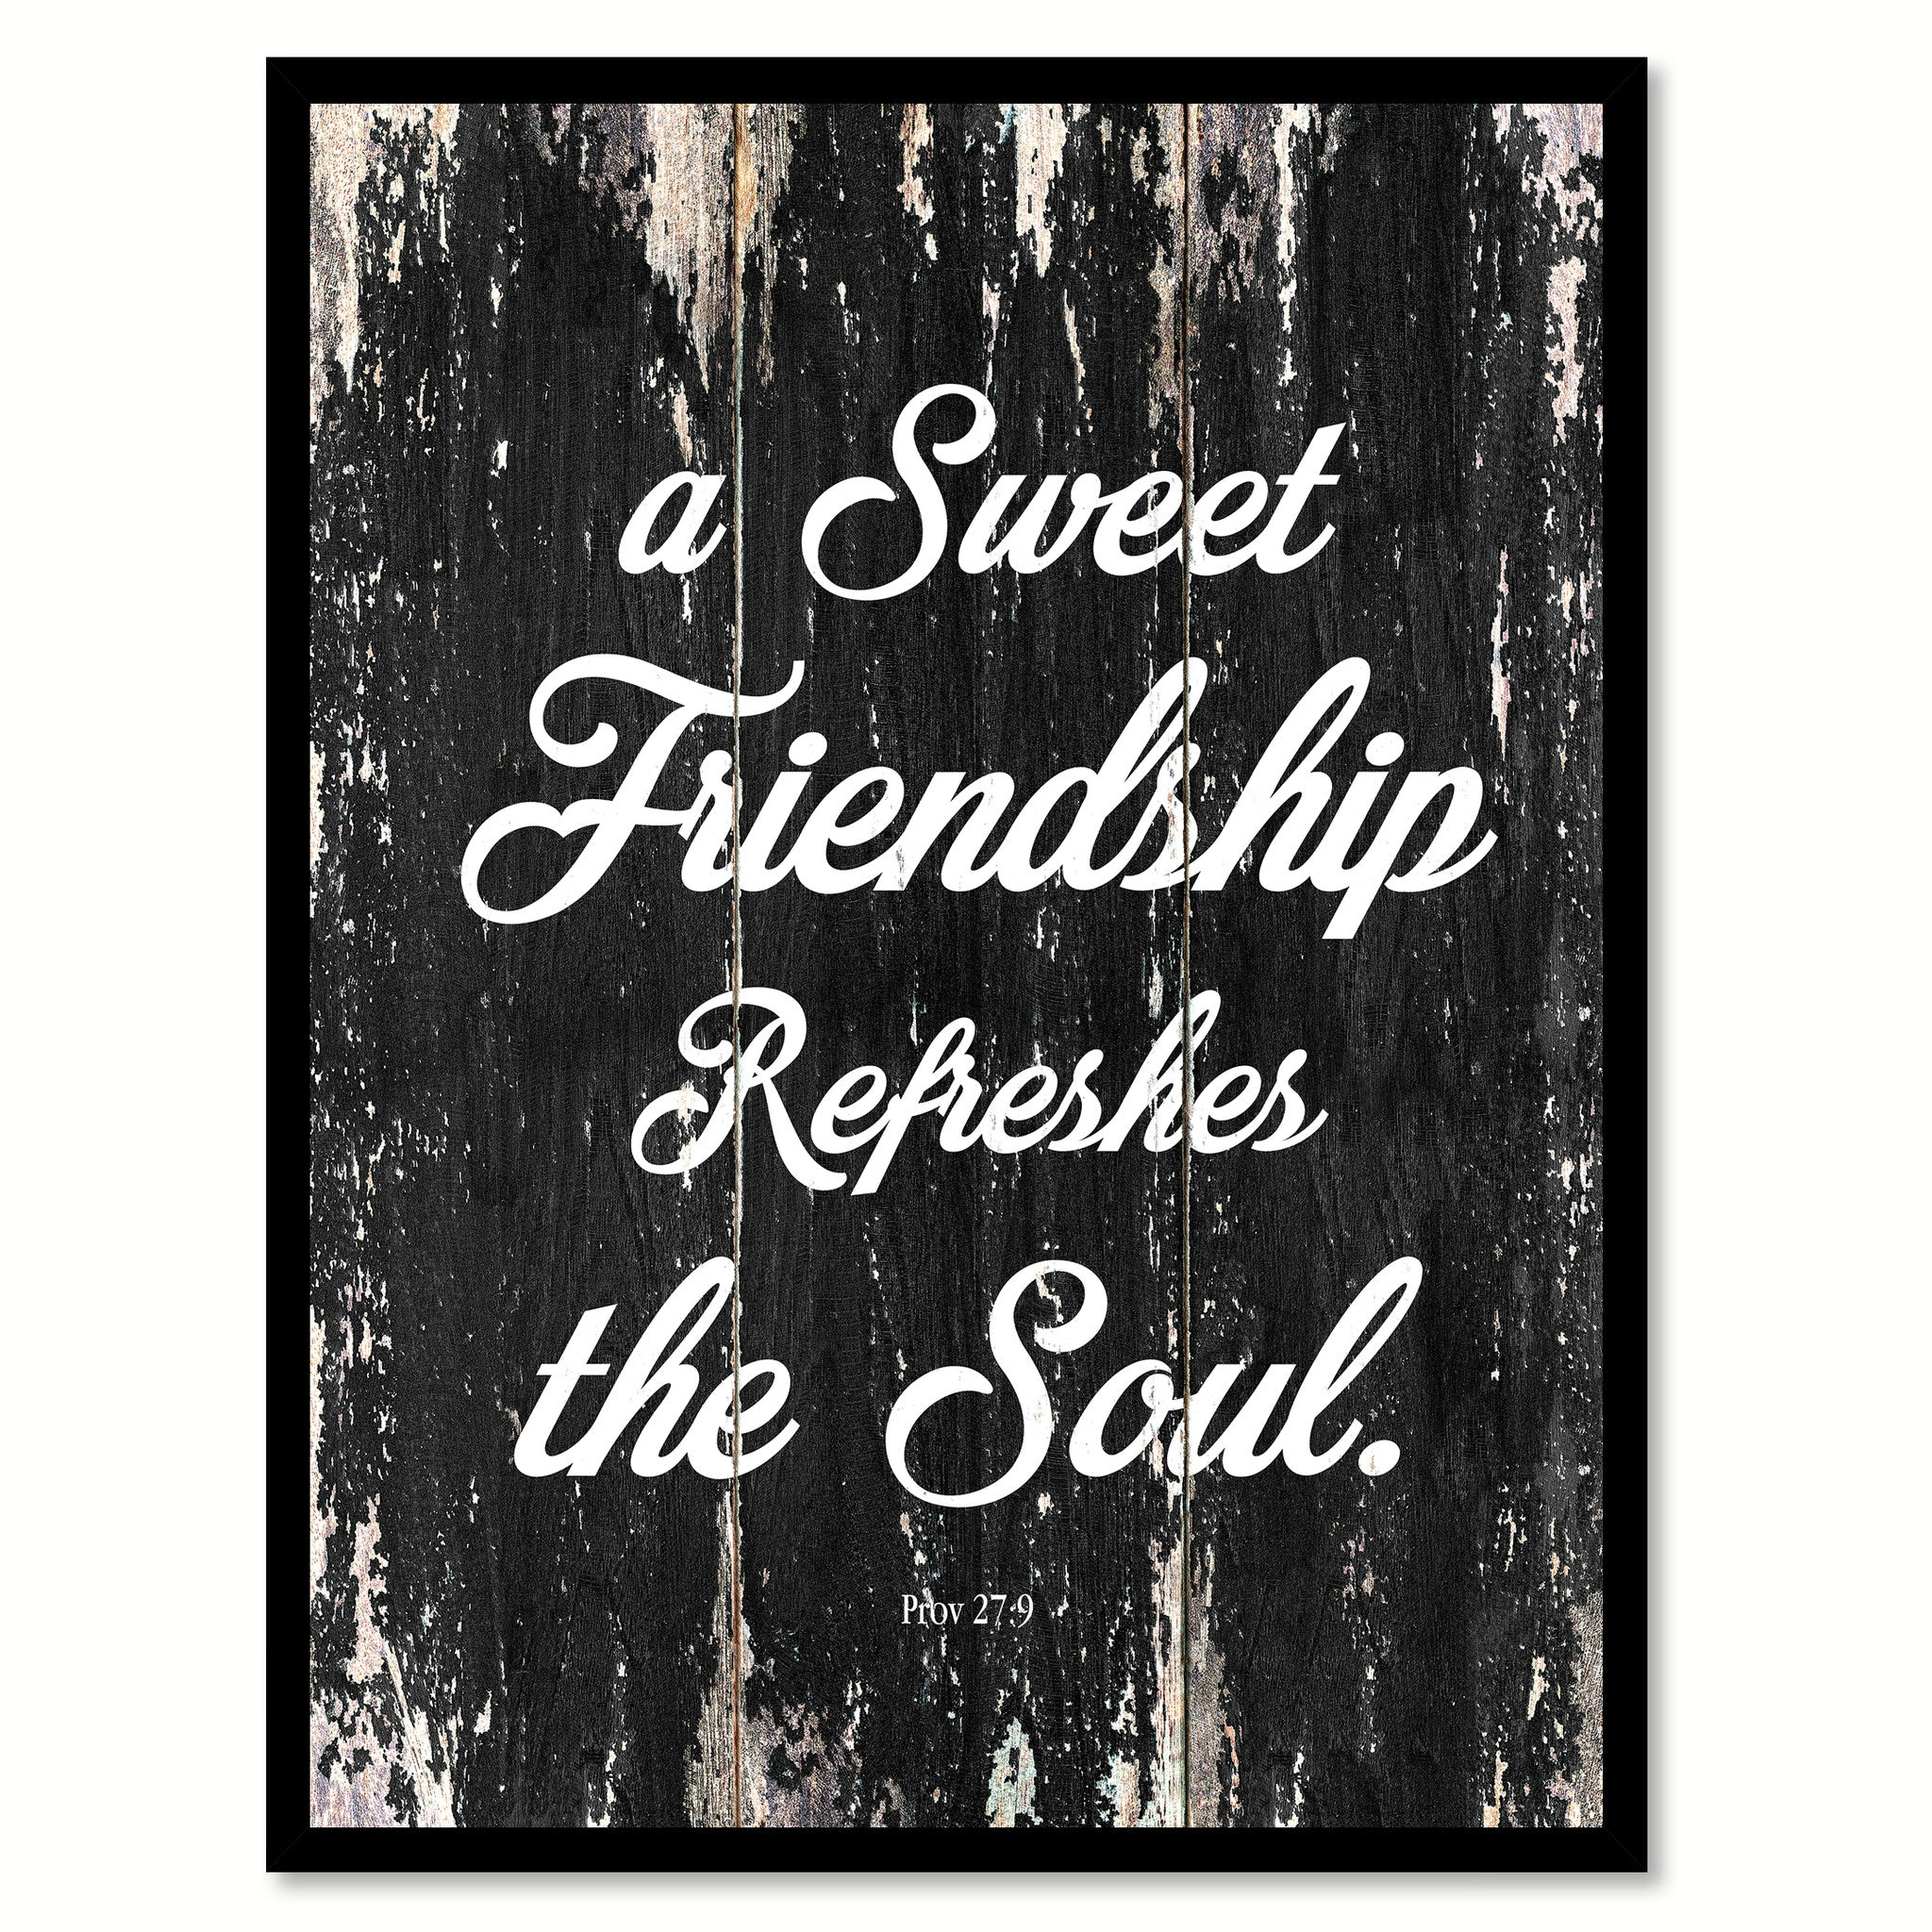 A sweet friendship refreshes the soul Motivational Quote Saying Canvas Print with Picture Frame Home Decor Wall Art